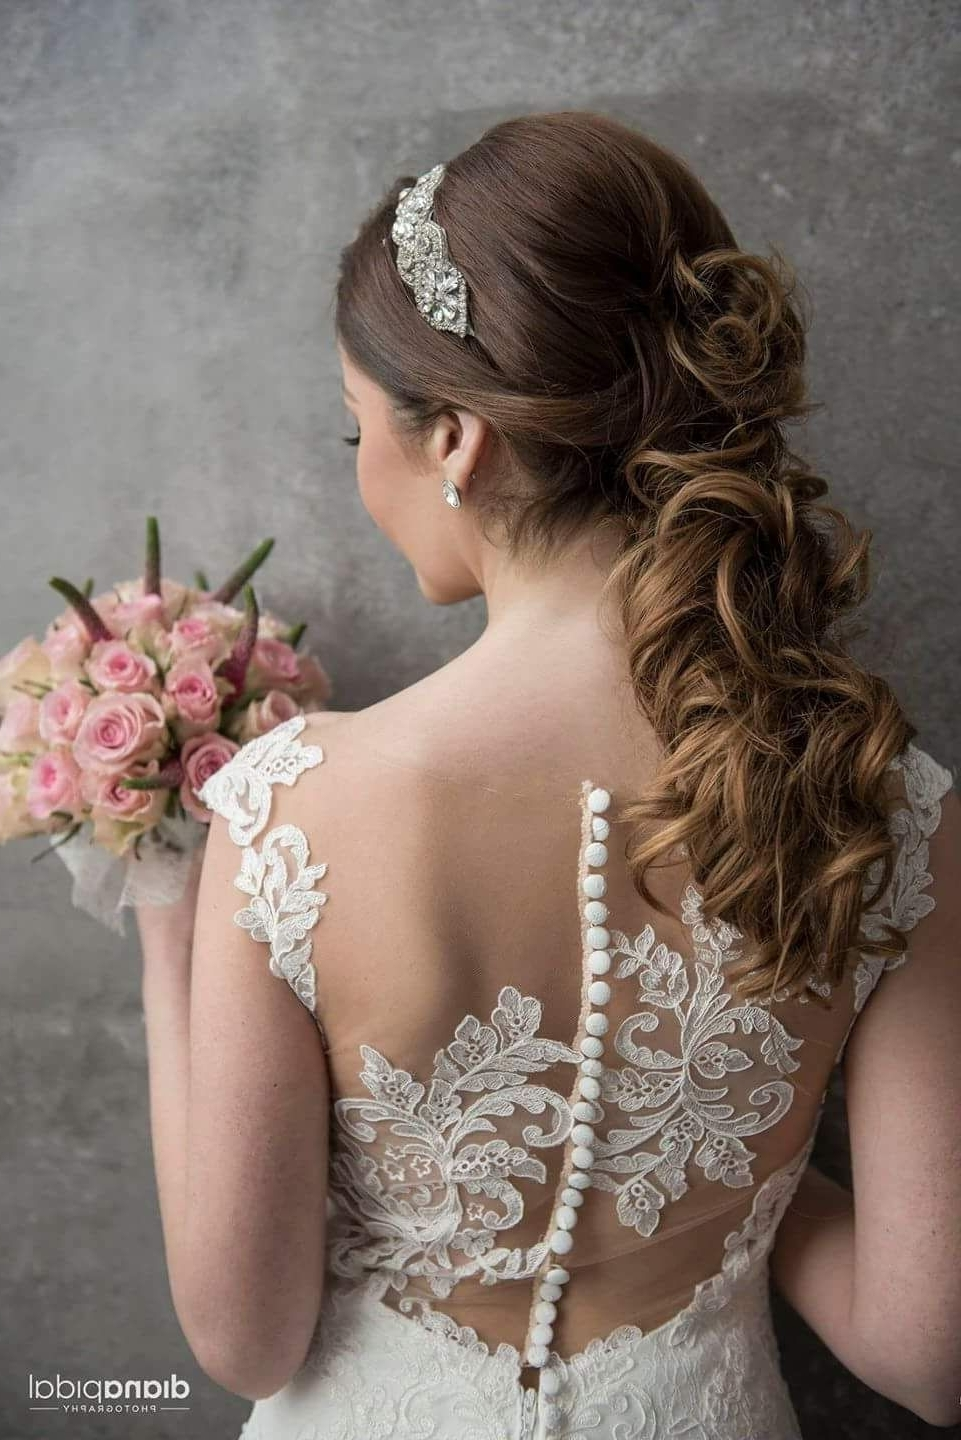 Most Popular Glamorous Wedding Hairstyles For Long Hair With Regard To 60 Glamorous Wedding Hairstyles For Long Hair To Look Like A Goddess (View 10 of 15)